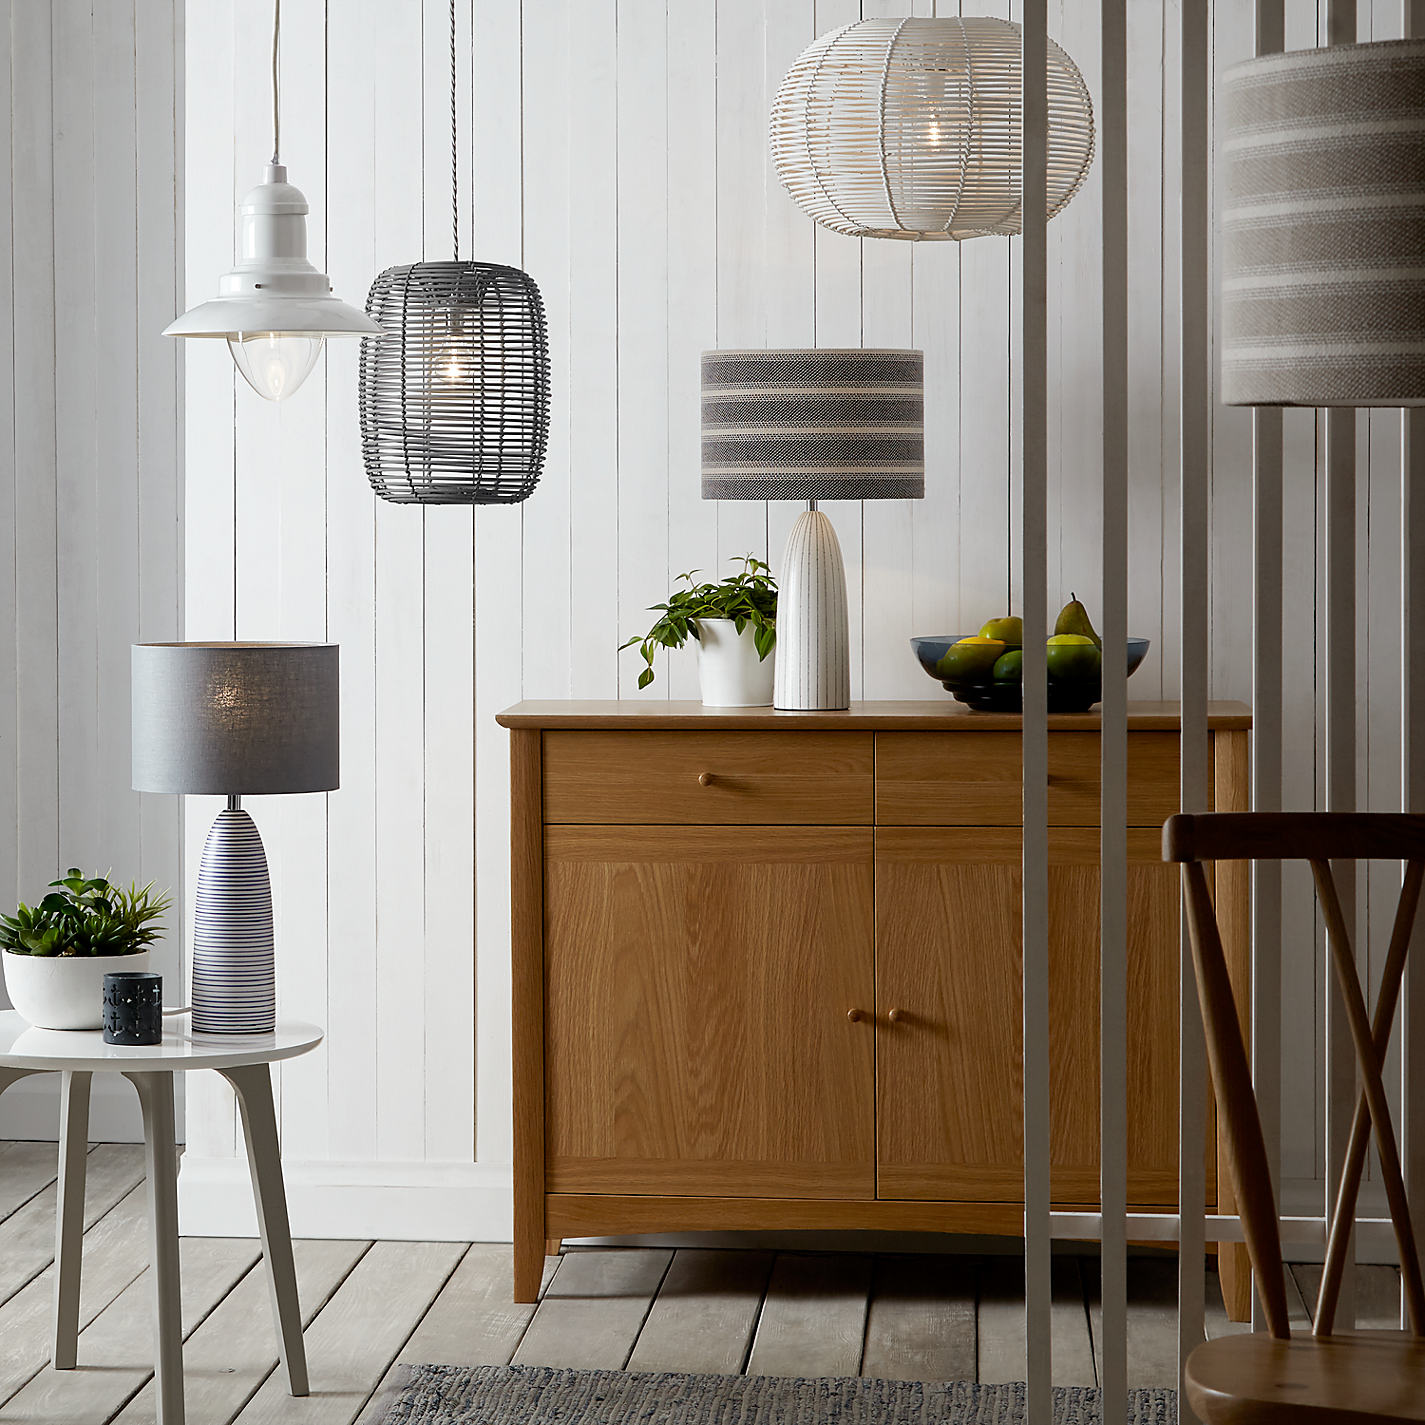 John lewis light shades kitchen lighting ideas for Kitchen lighting ideas john lewis